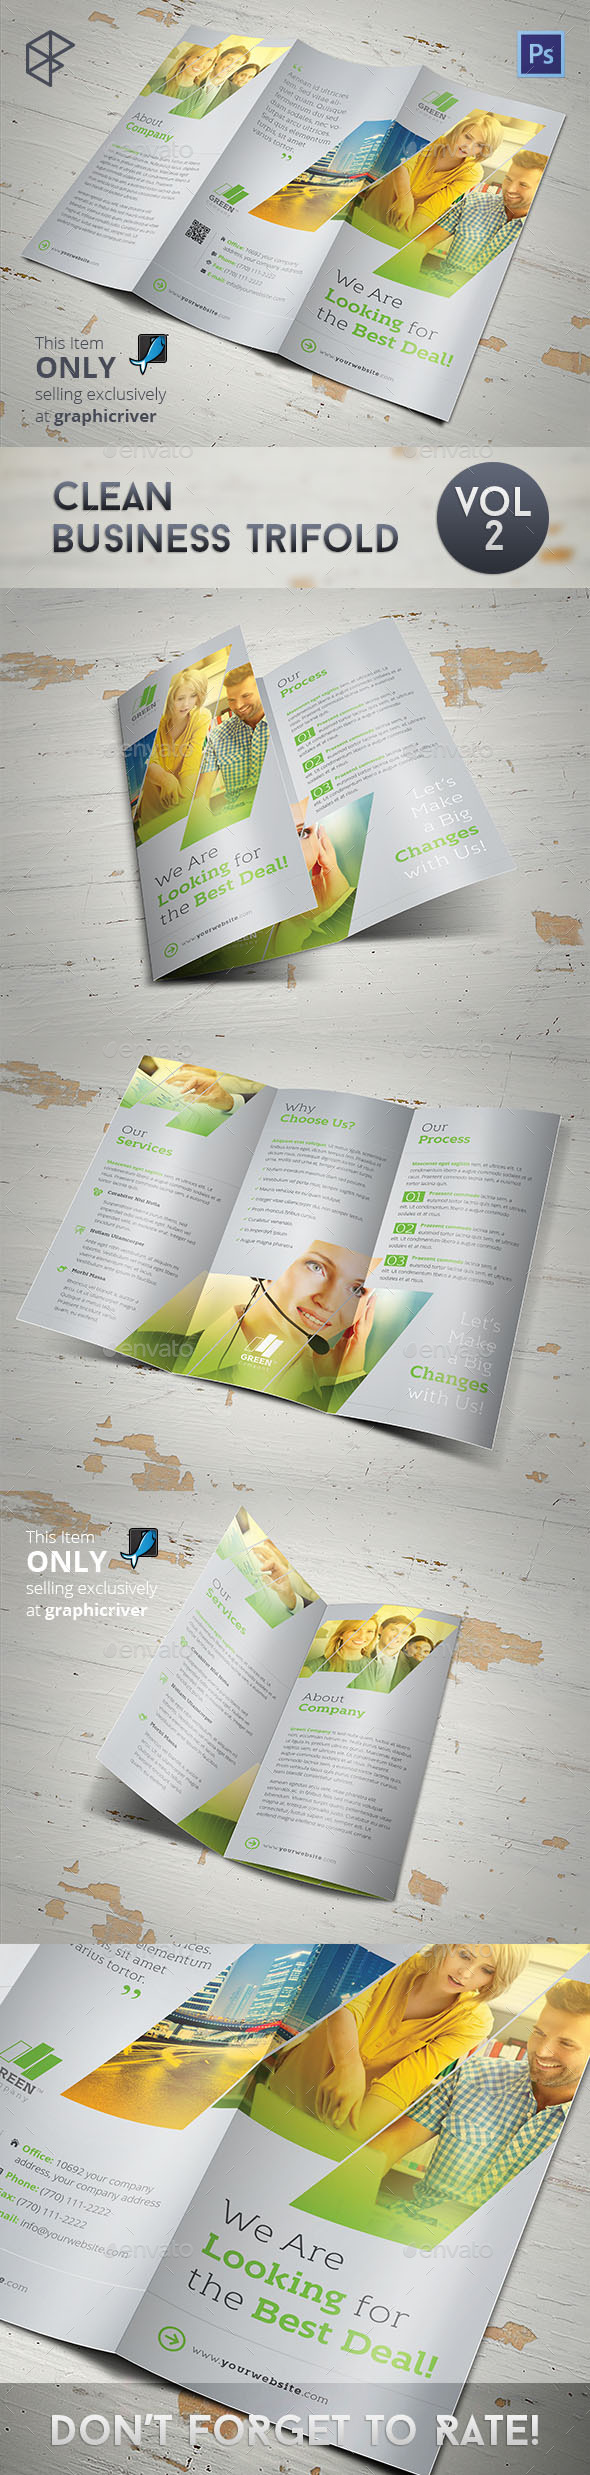 GraphicRiver Clean Business Trifold Vol 2 11118927